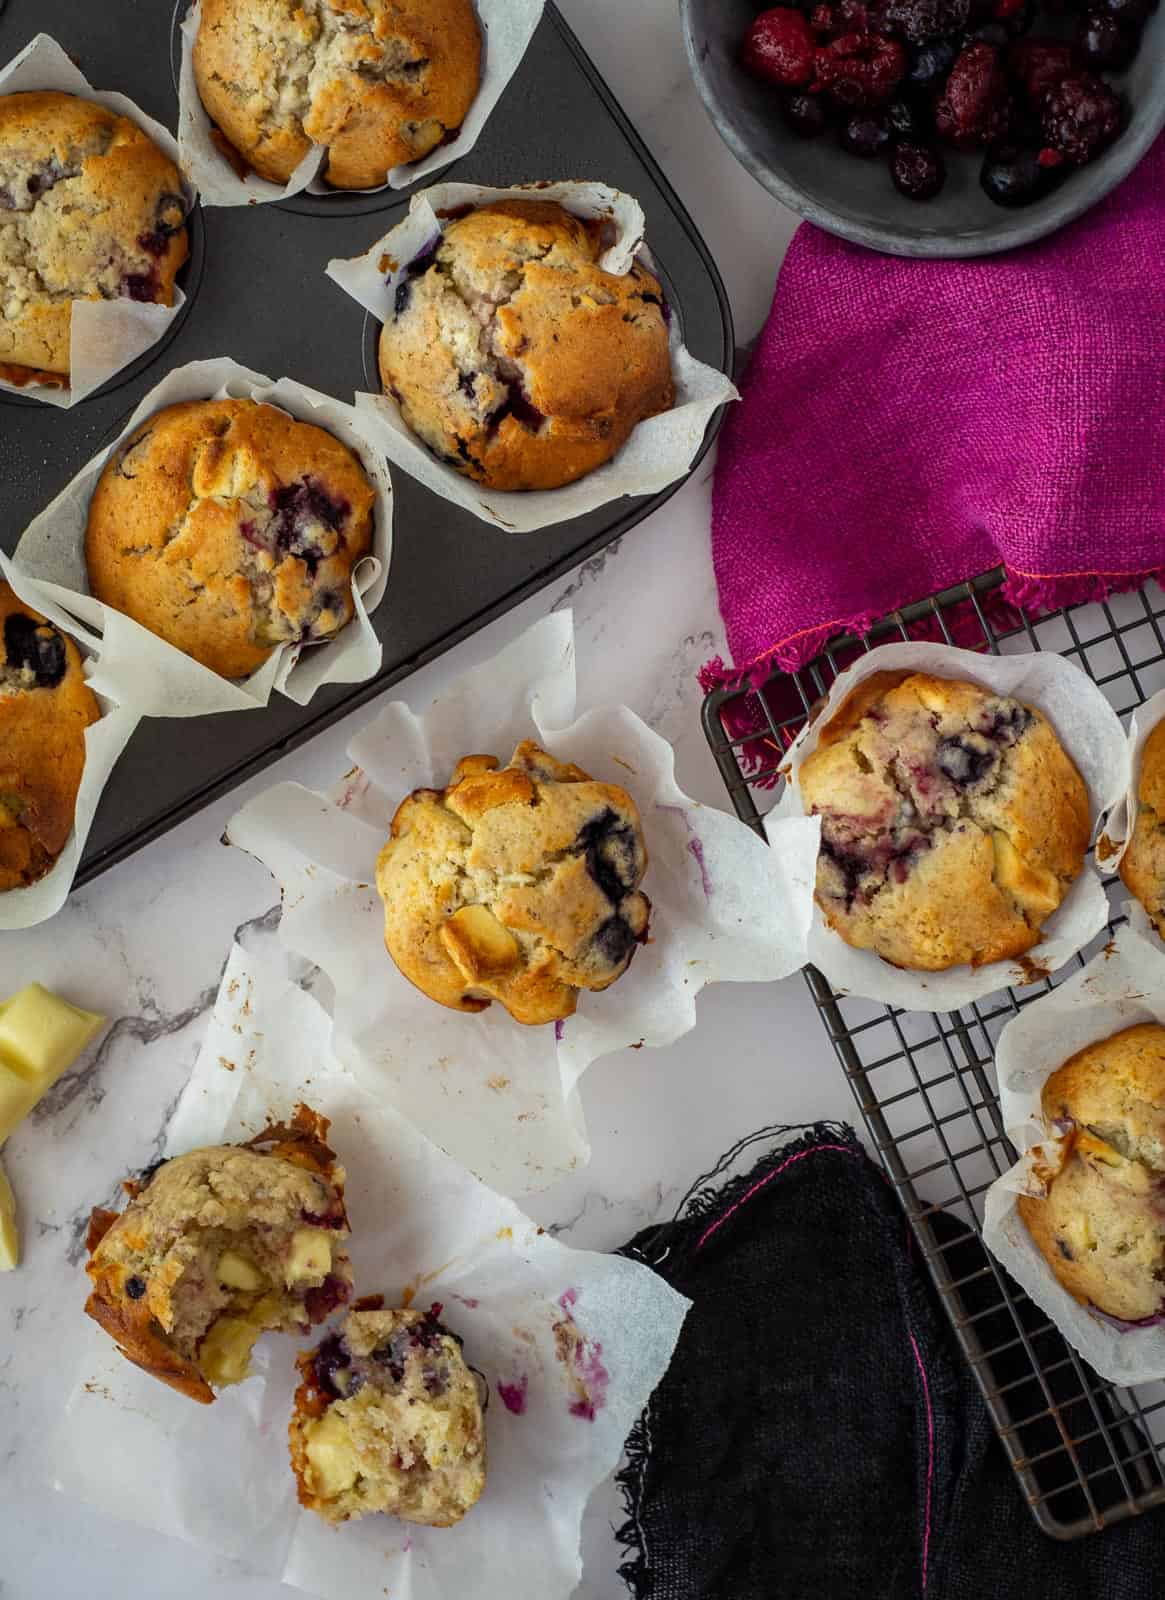 white chocolate muffins on countertop, some on a wire rack and in a muffin tray